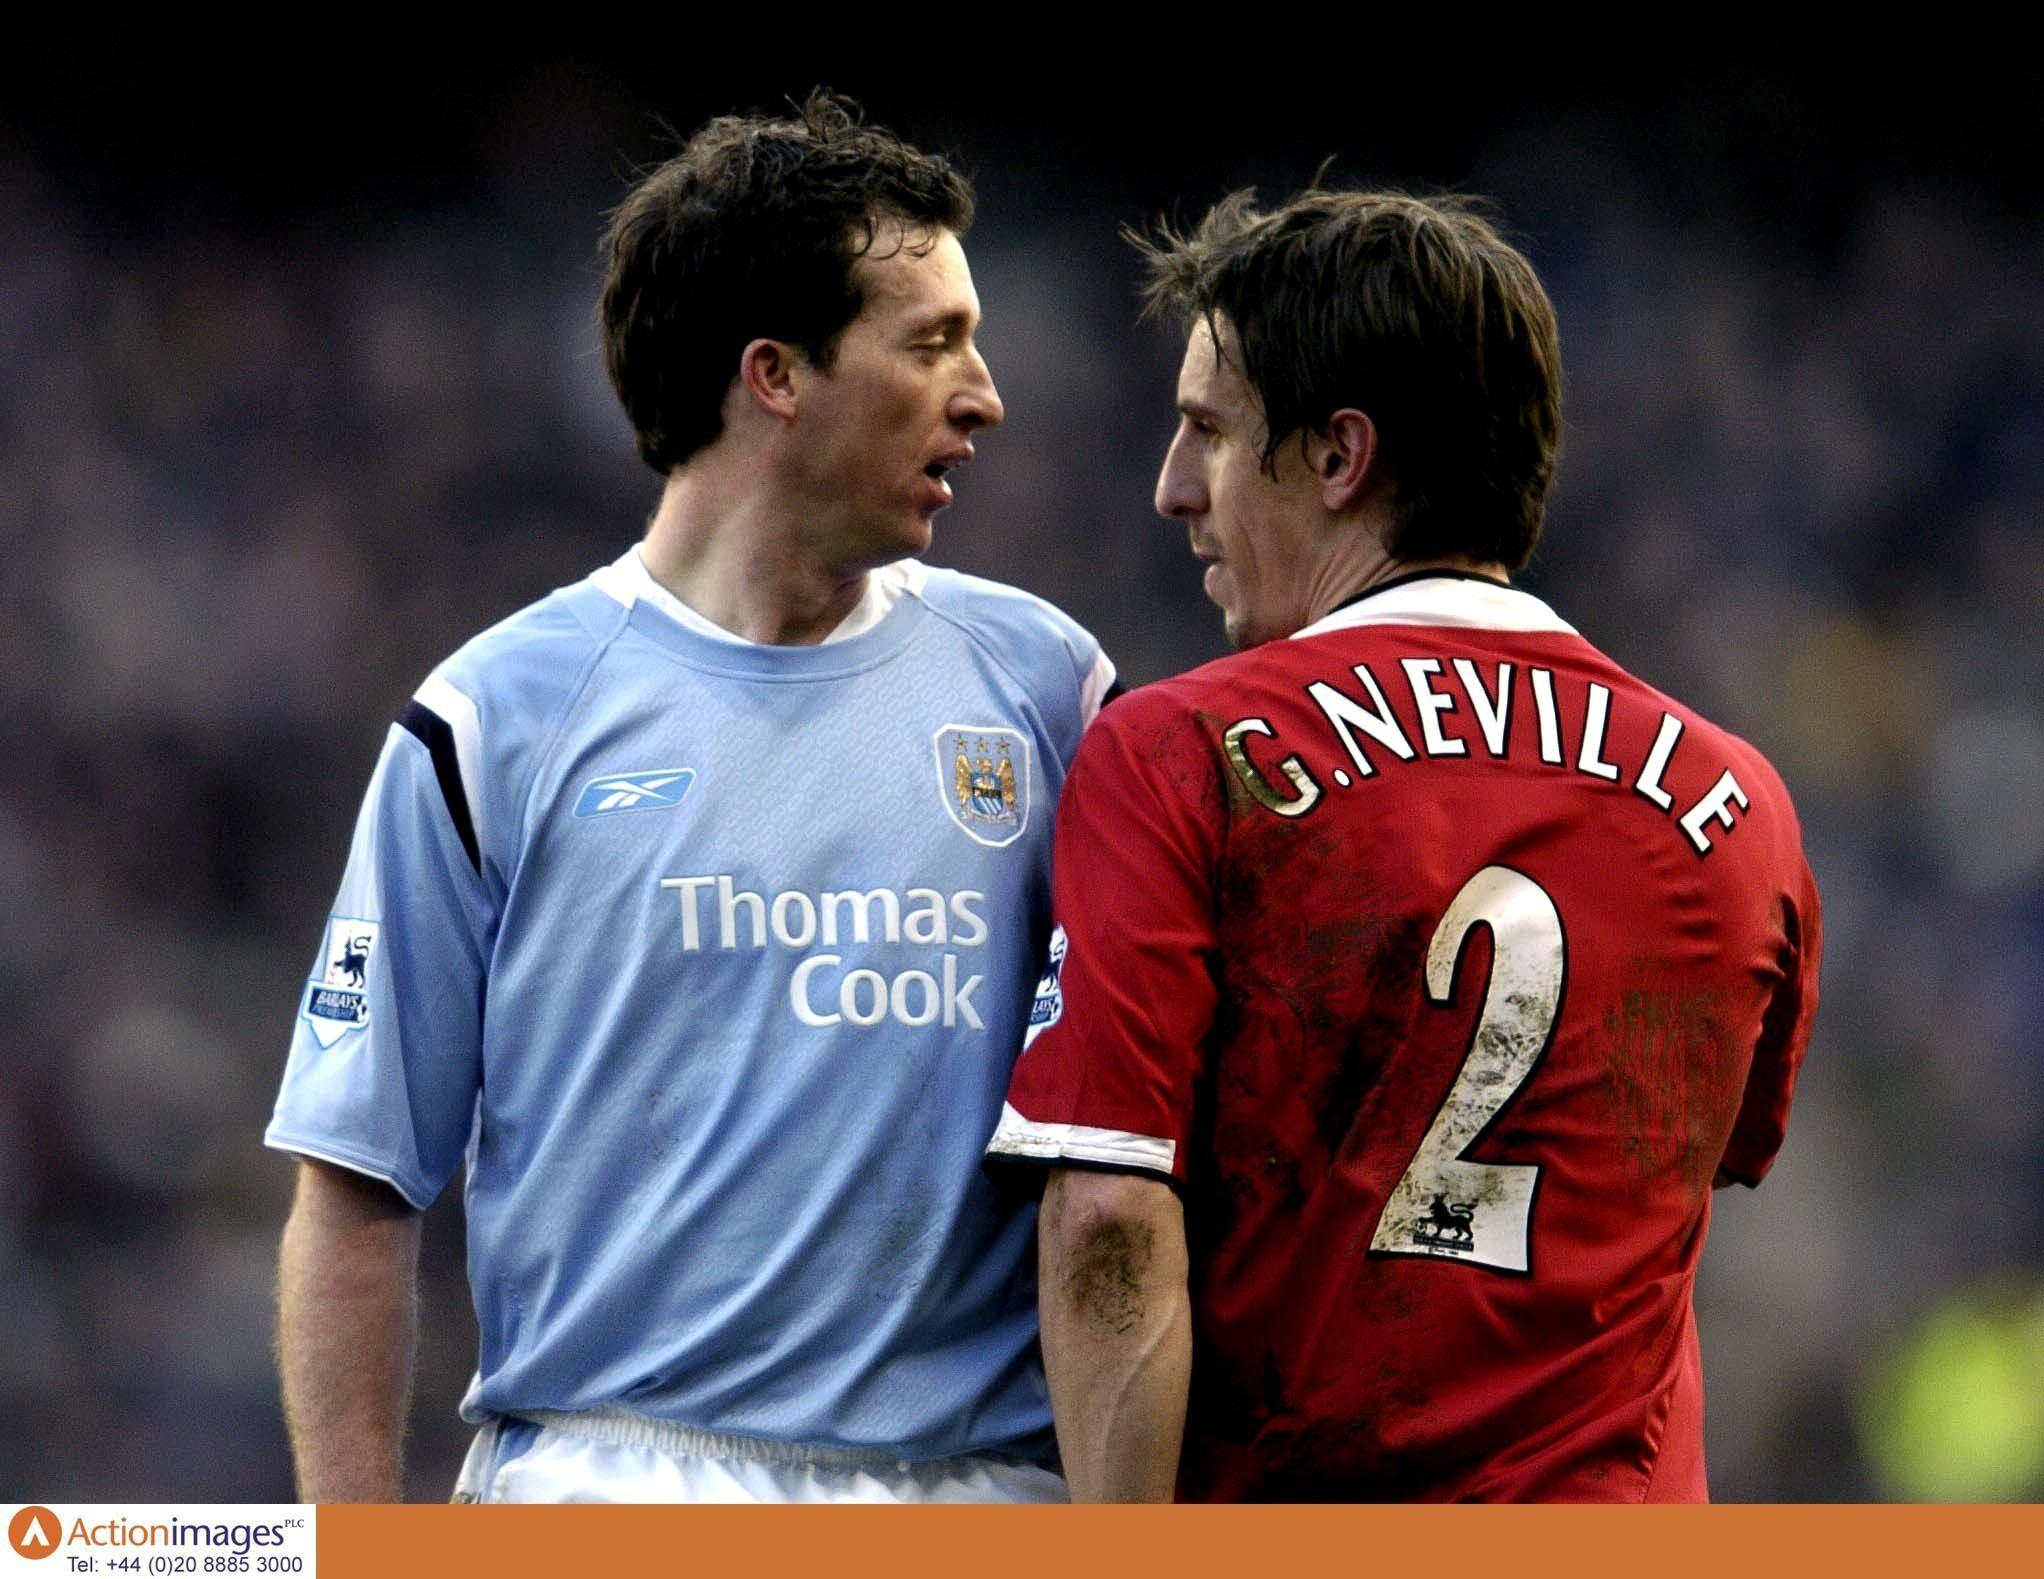 Fowler and Neville regularly didn't see eye to eye